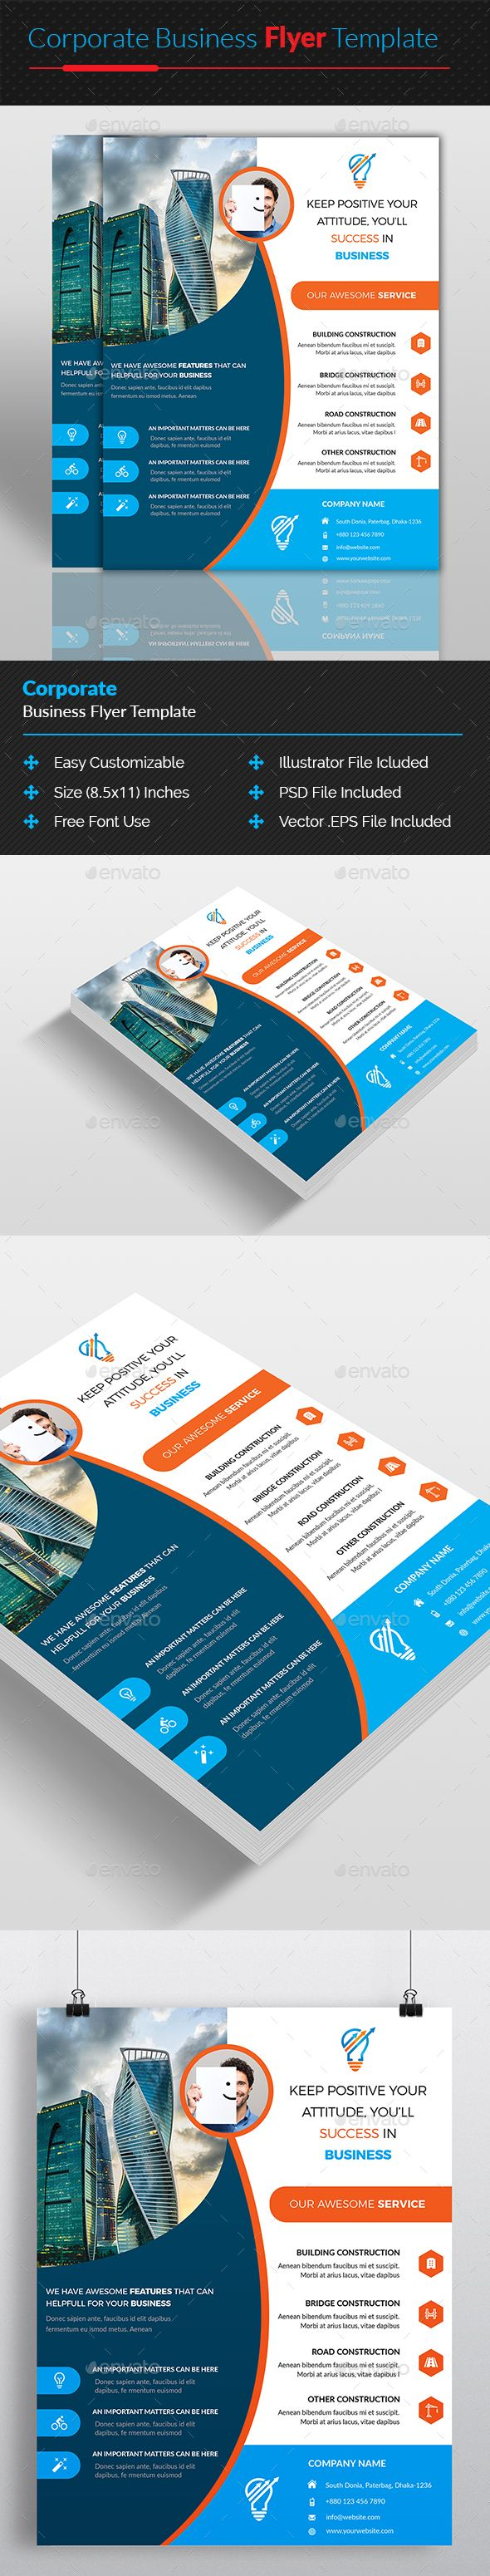 Corporate business flyer design template corporate flyers design corporate business flyer design template corporate flyers design template psd vector eps ai accmission Images